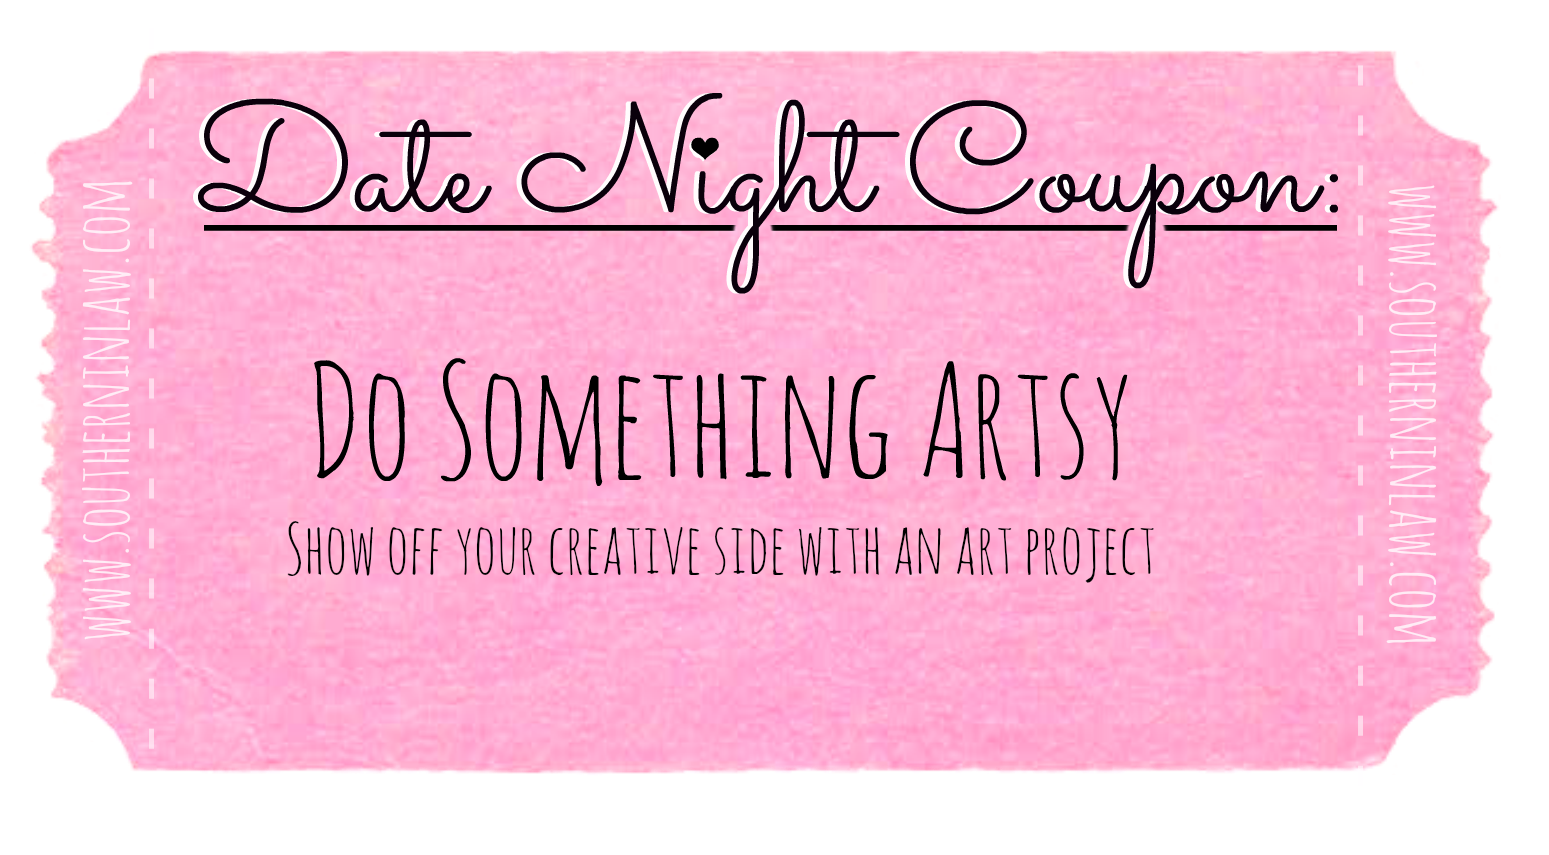 Affordable Date Ideas - Cheap Date Ideas Coupons - Work on an Art Project Together